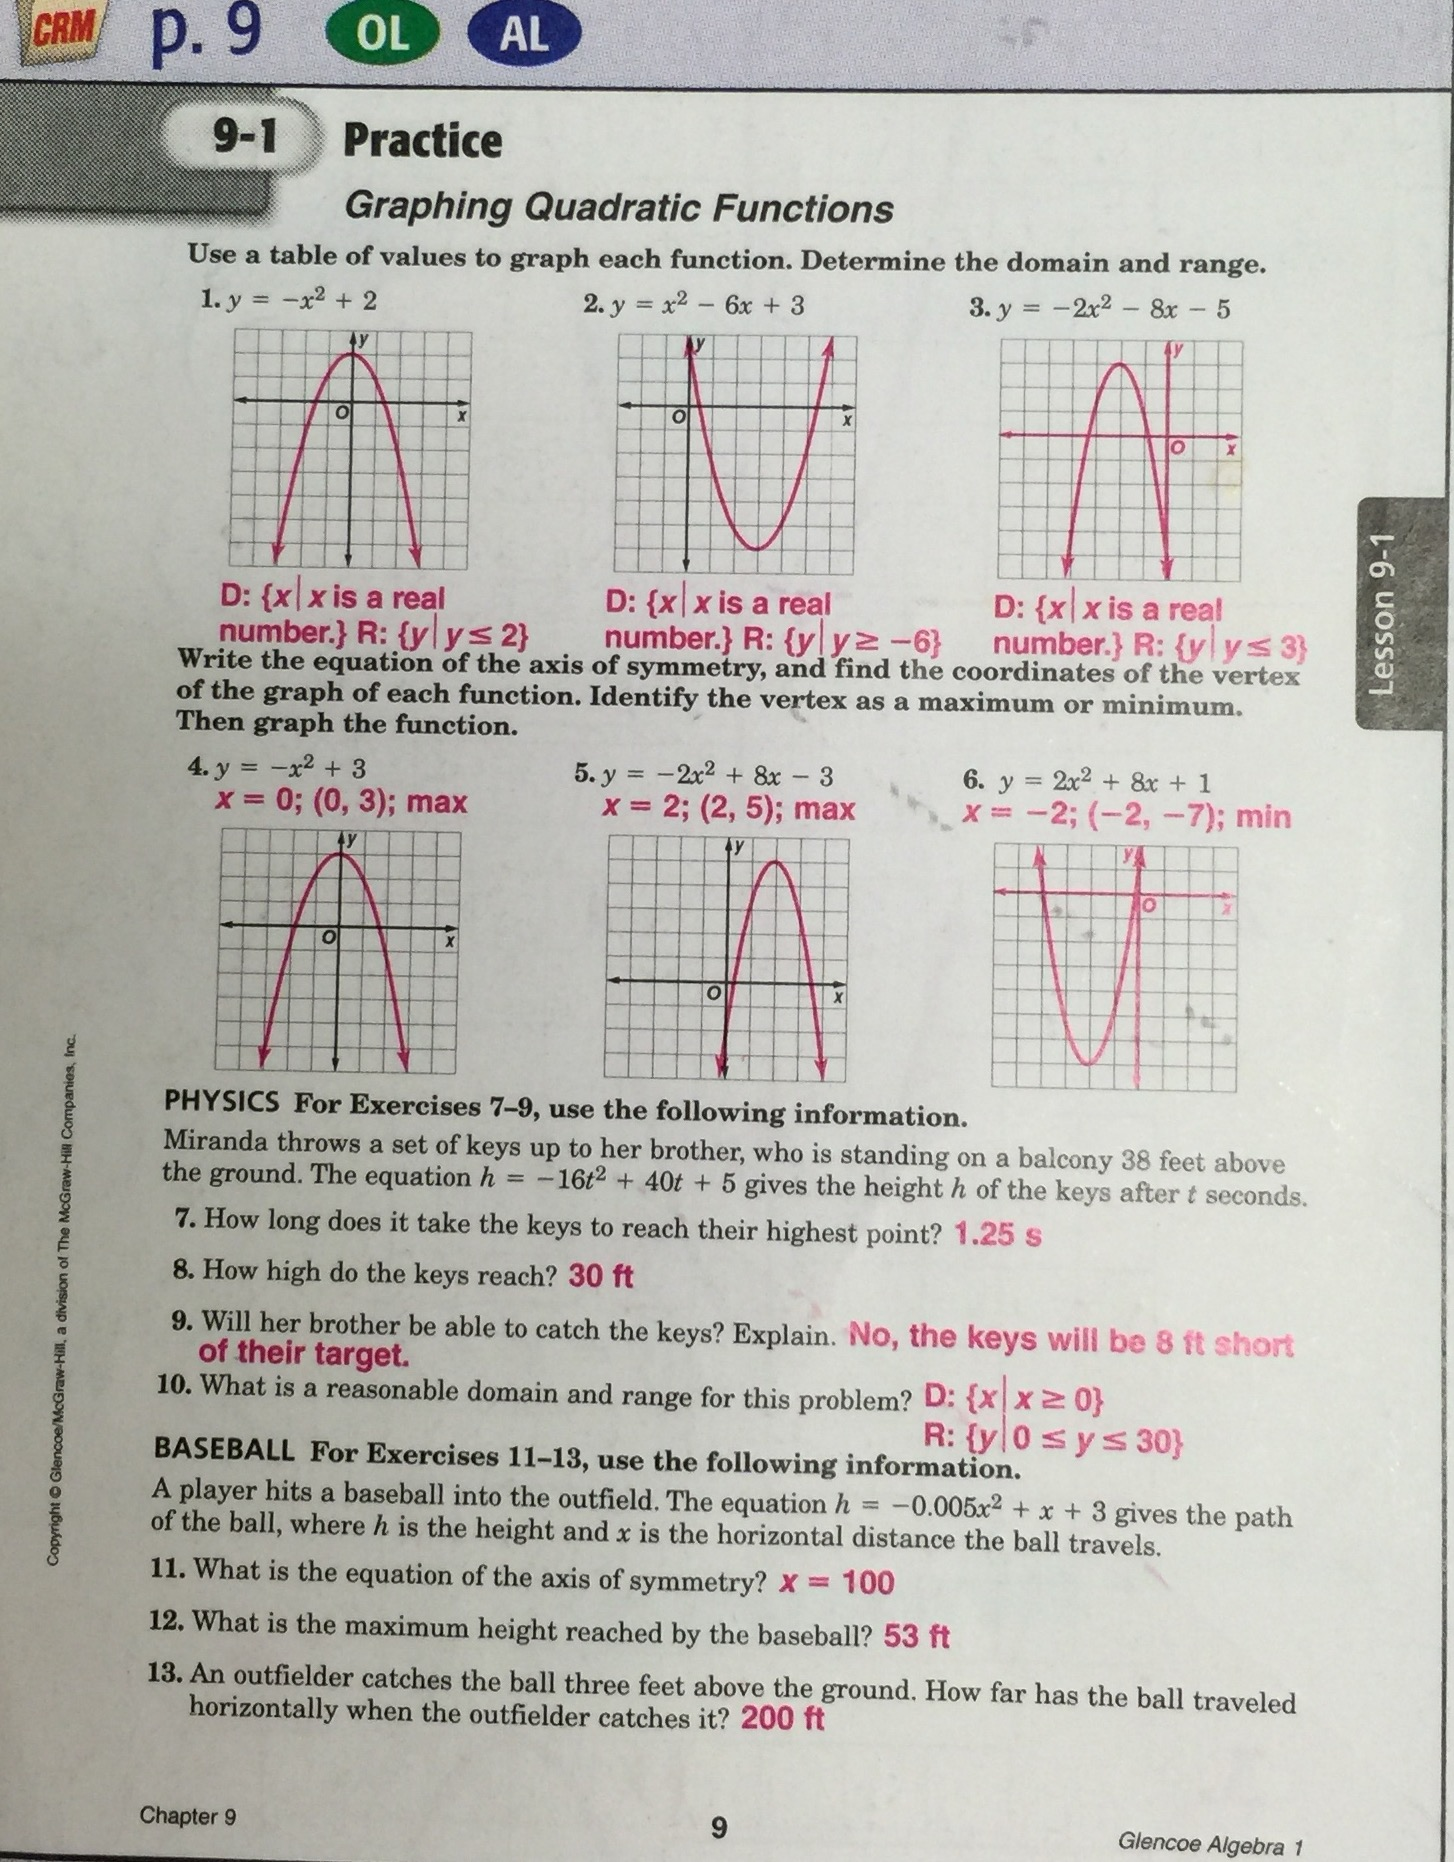 Glencoe algebra 2 workbook answers